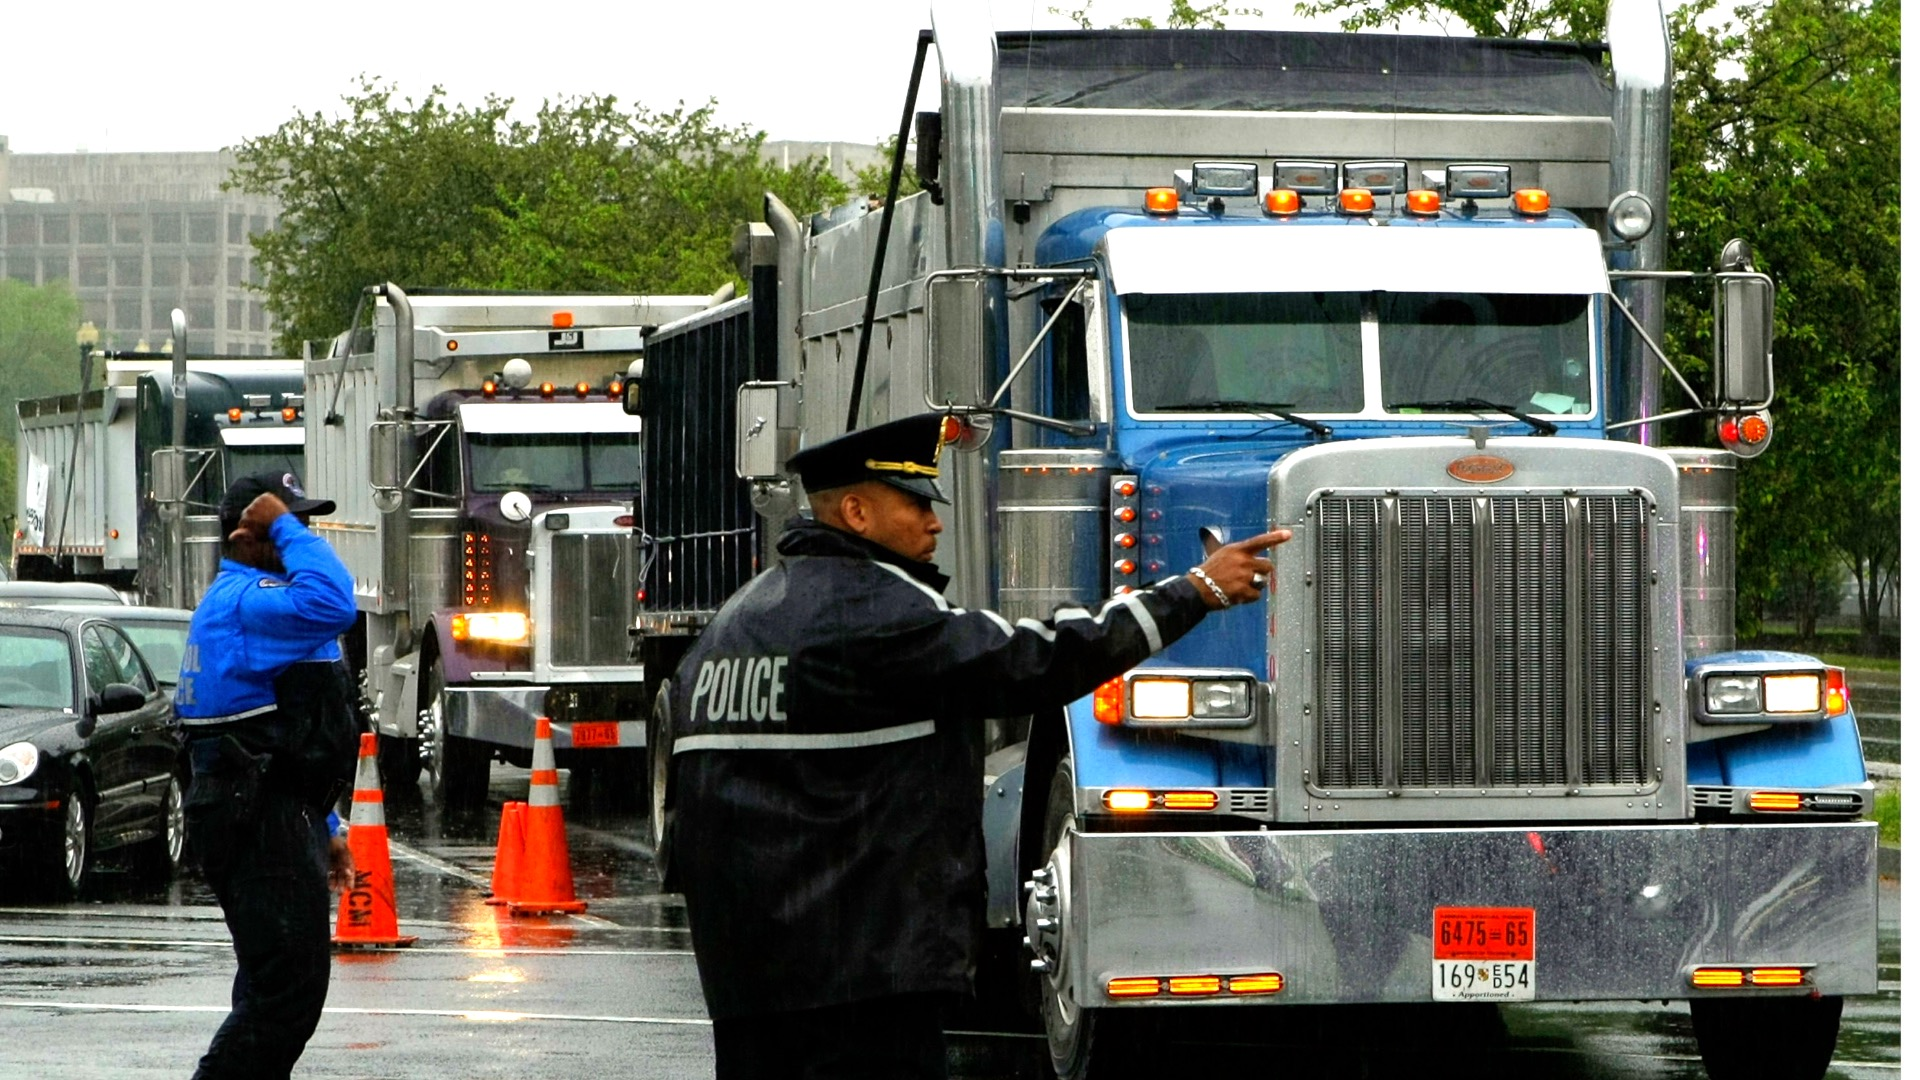 JKC Trucking Stops Deliveries to Cities Pushing to Defund or Disband Police Departments